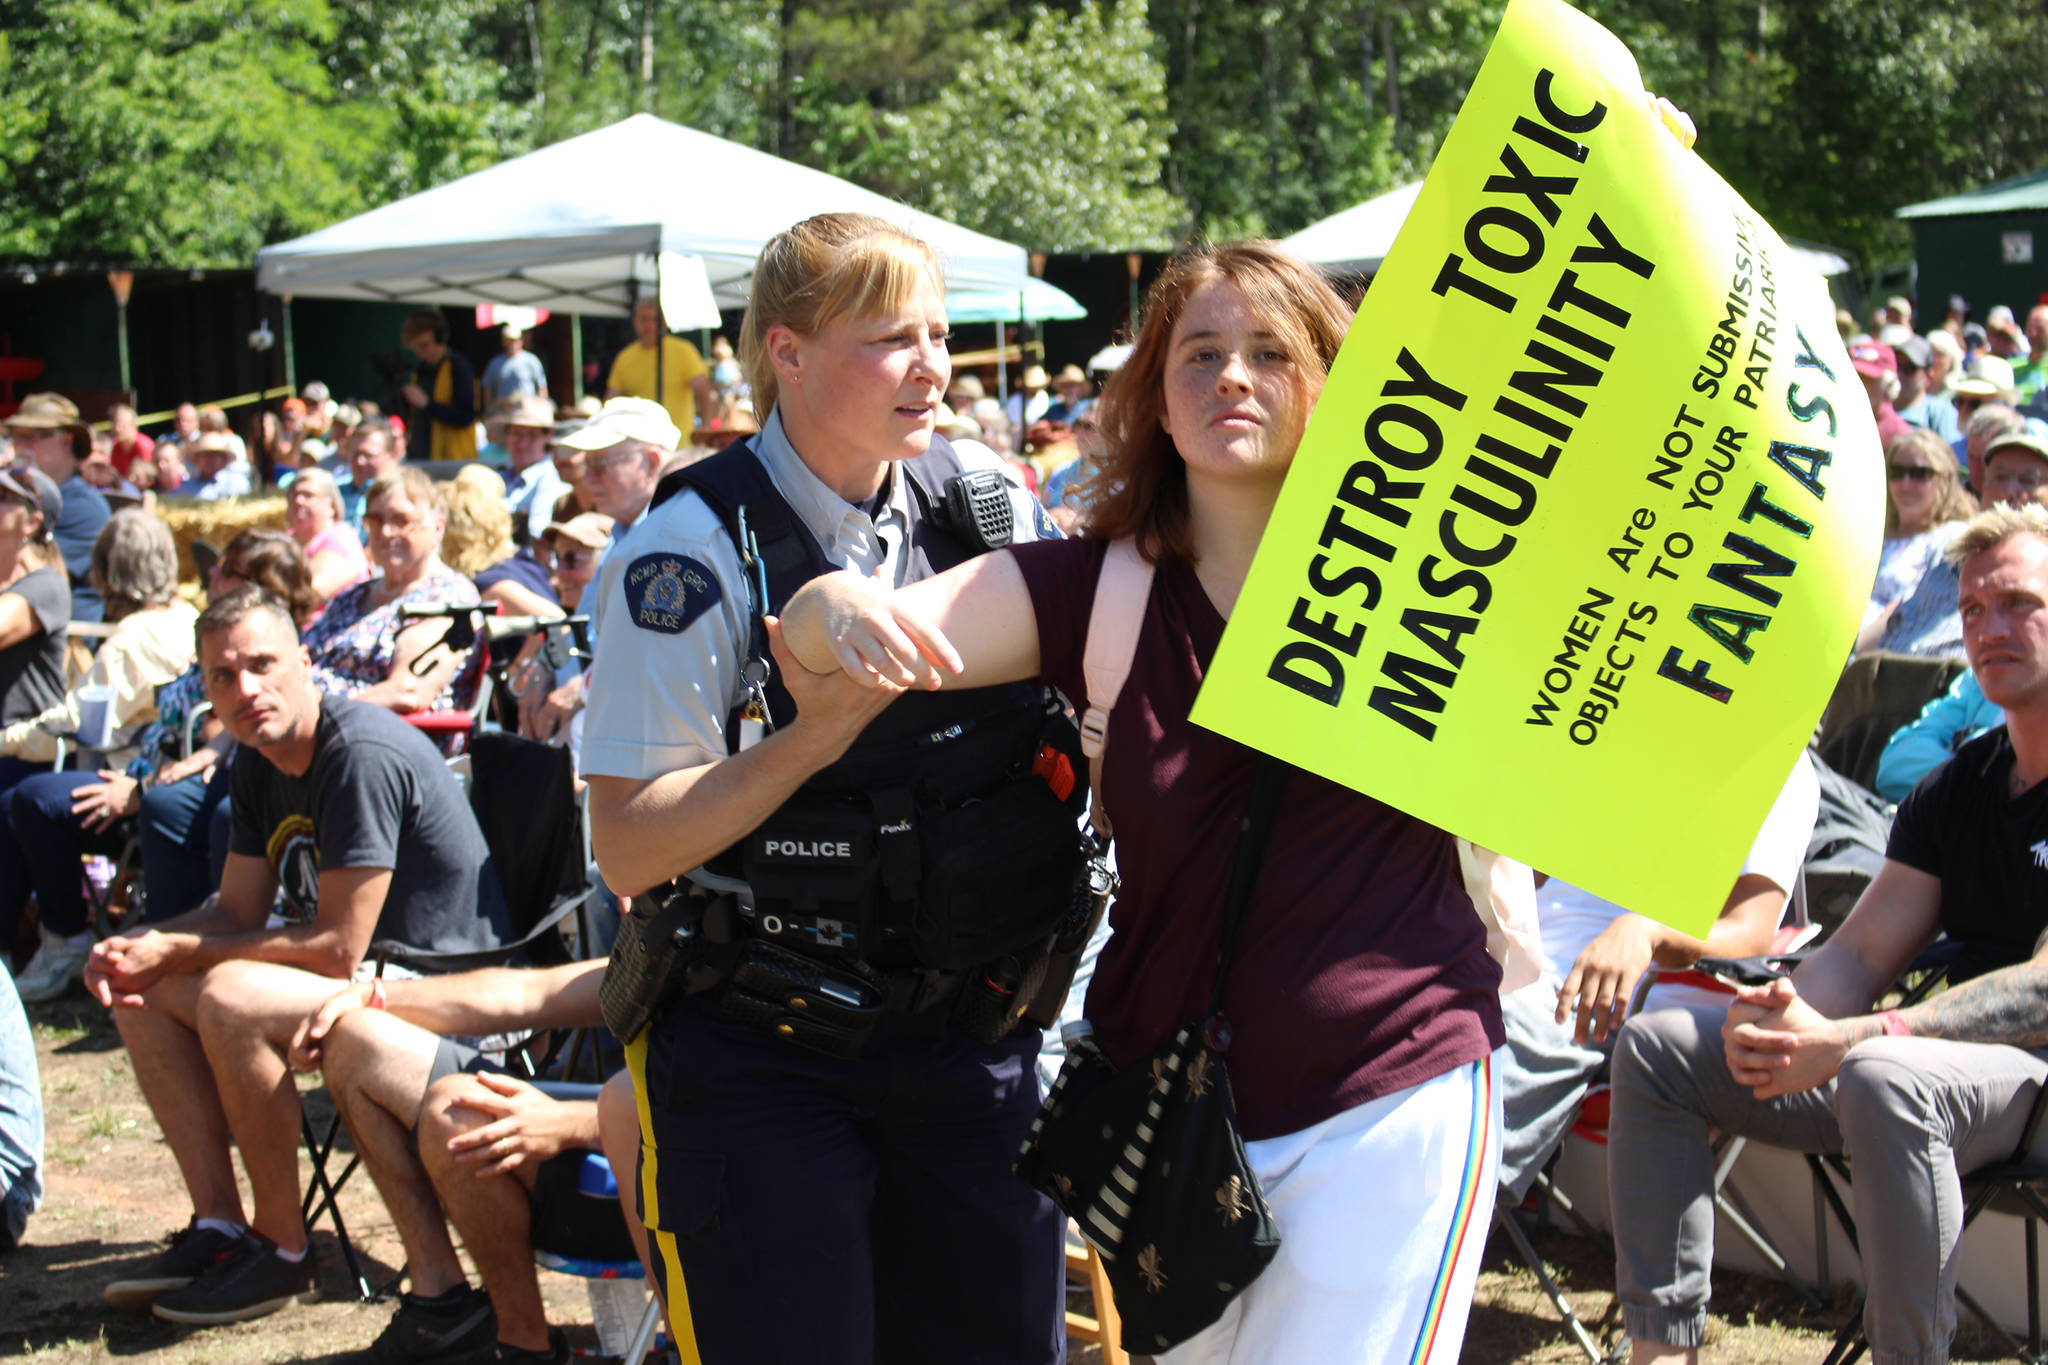 A protester is ushered off to the side at the Mighty Men's Conference in Castlegar on Sunday, June 30, 2019. (John Boivin/Castlegar News)